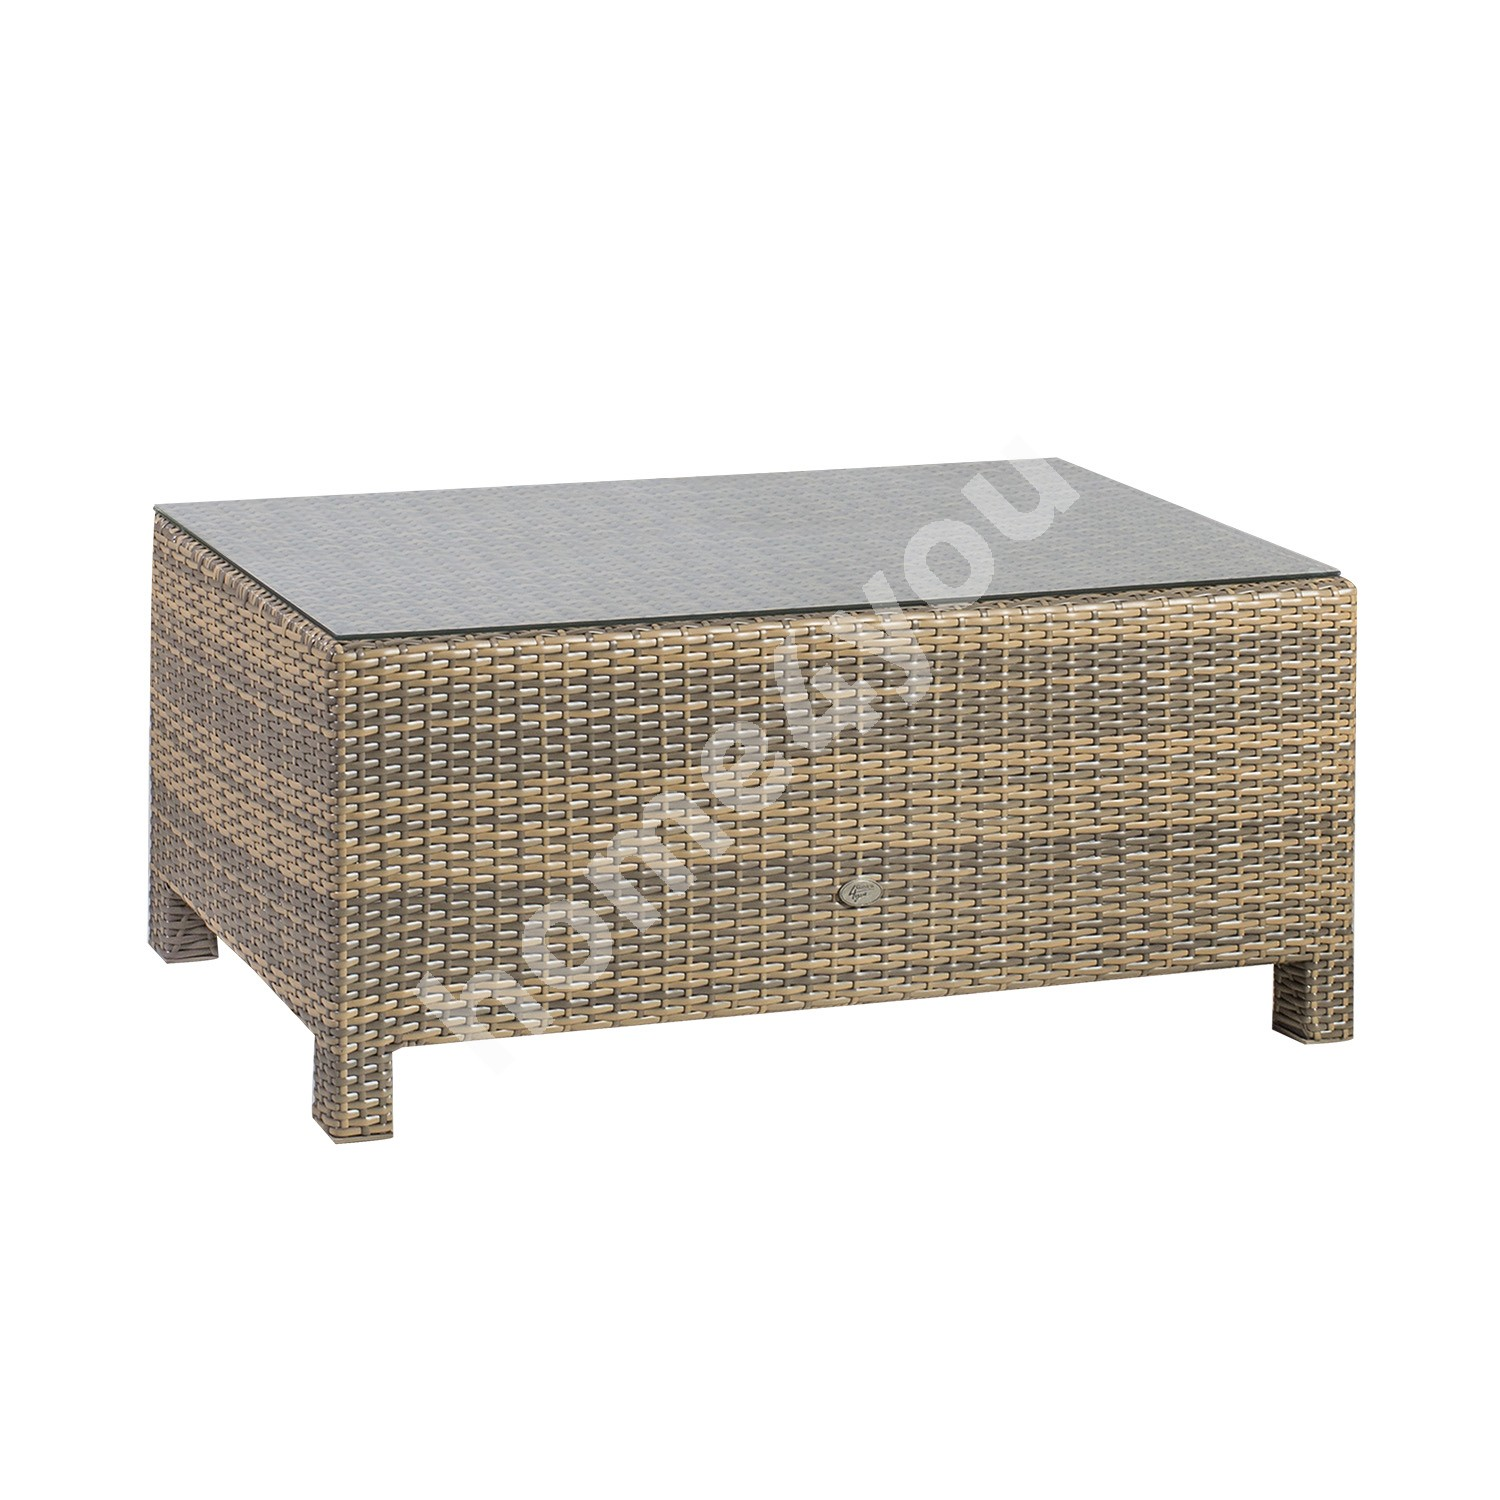 Coffee table SEVILLA 102x50,5xH43,5cm, table top: 5mm clear glass, aluminum frame with plastic wicker, color: cappuccino